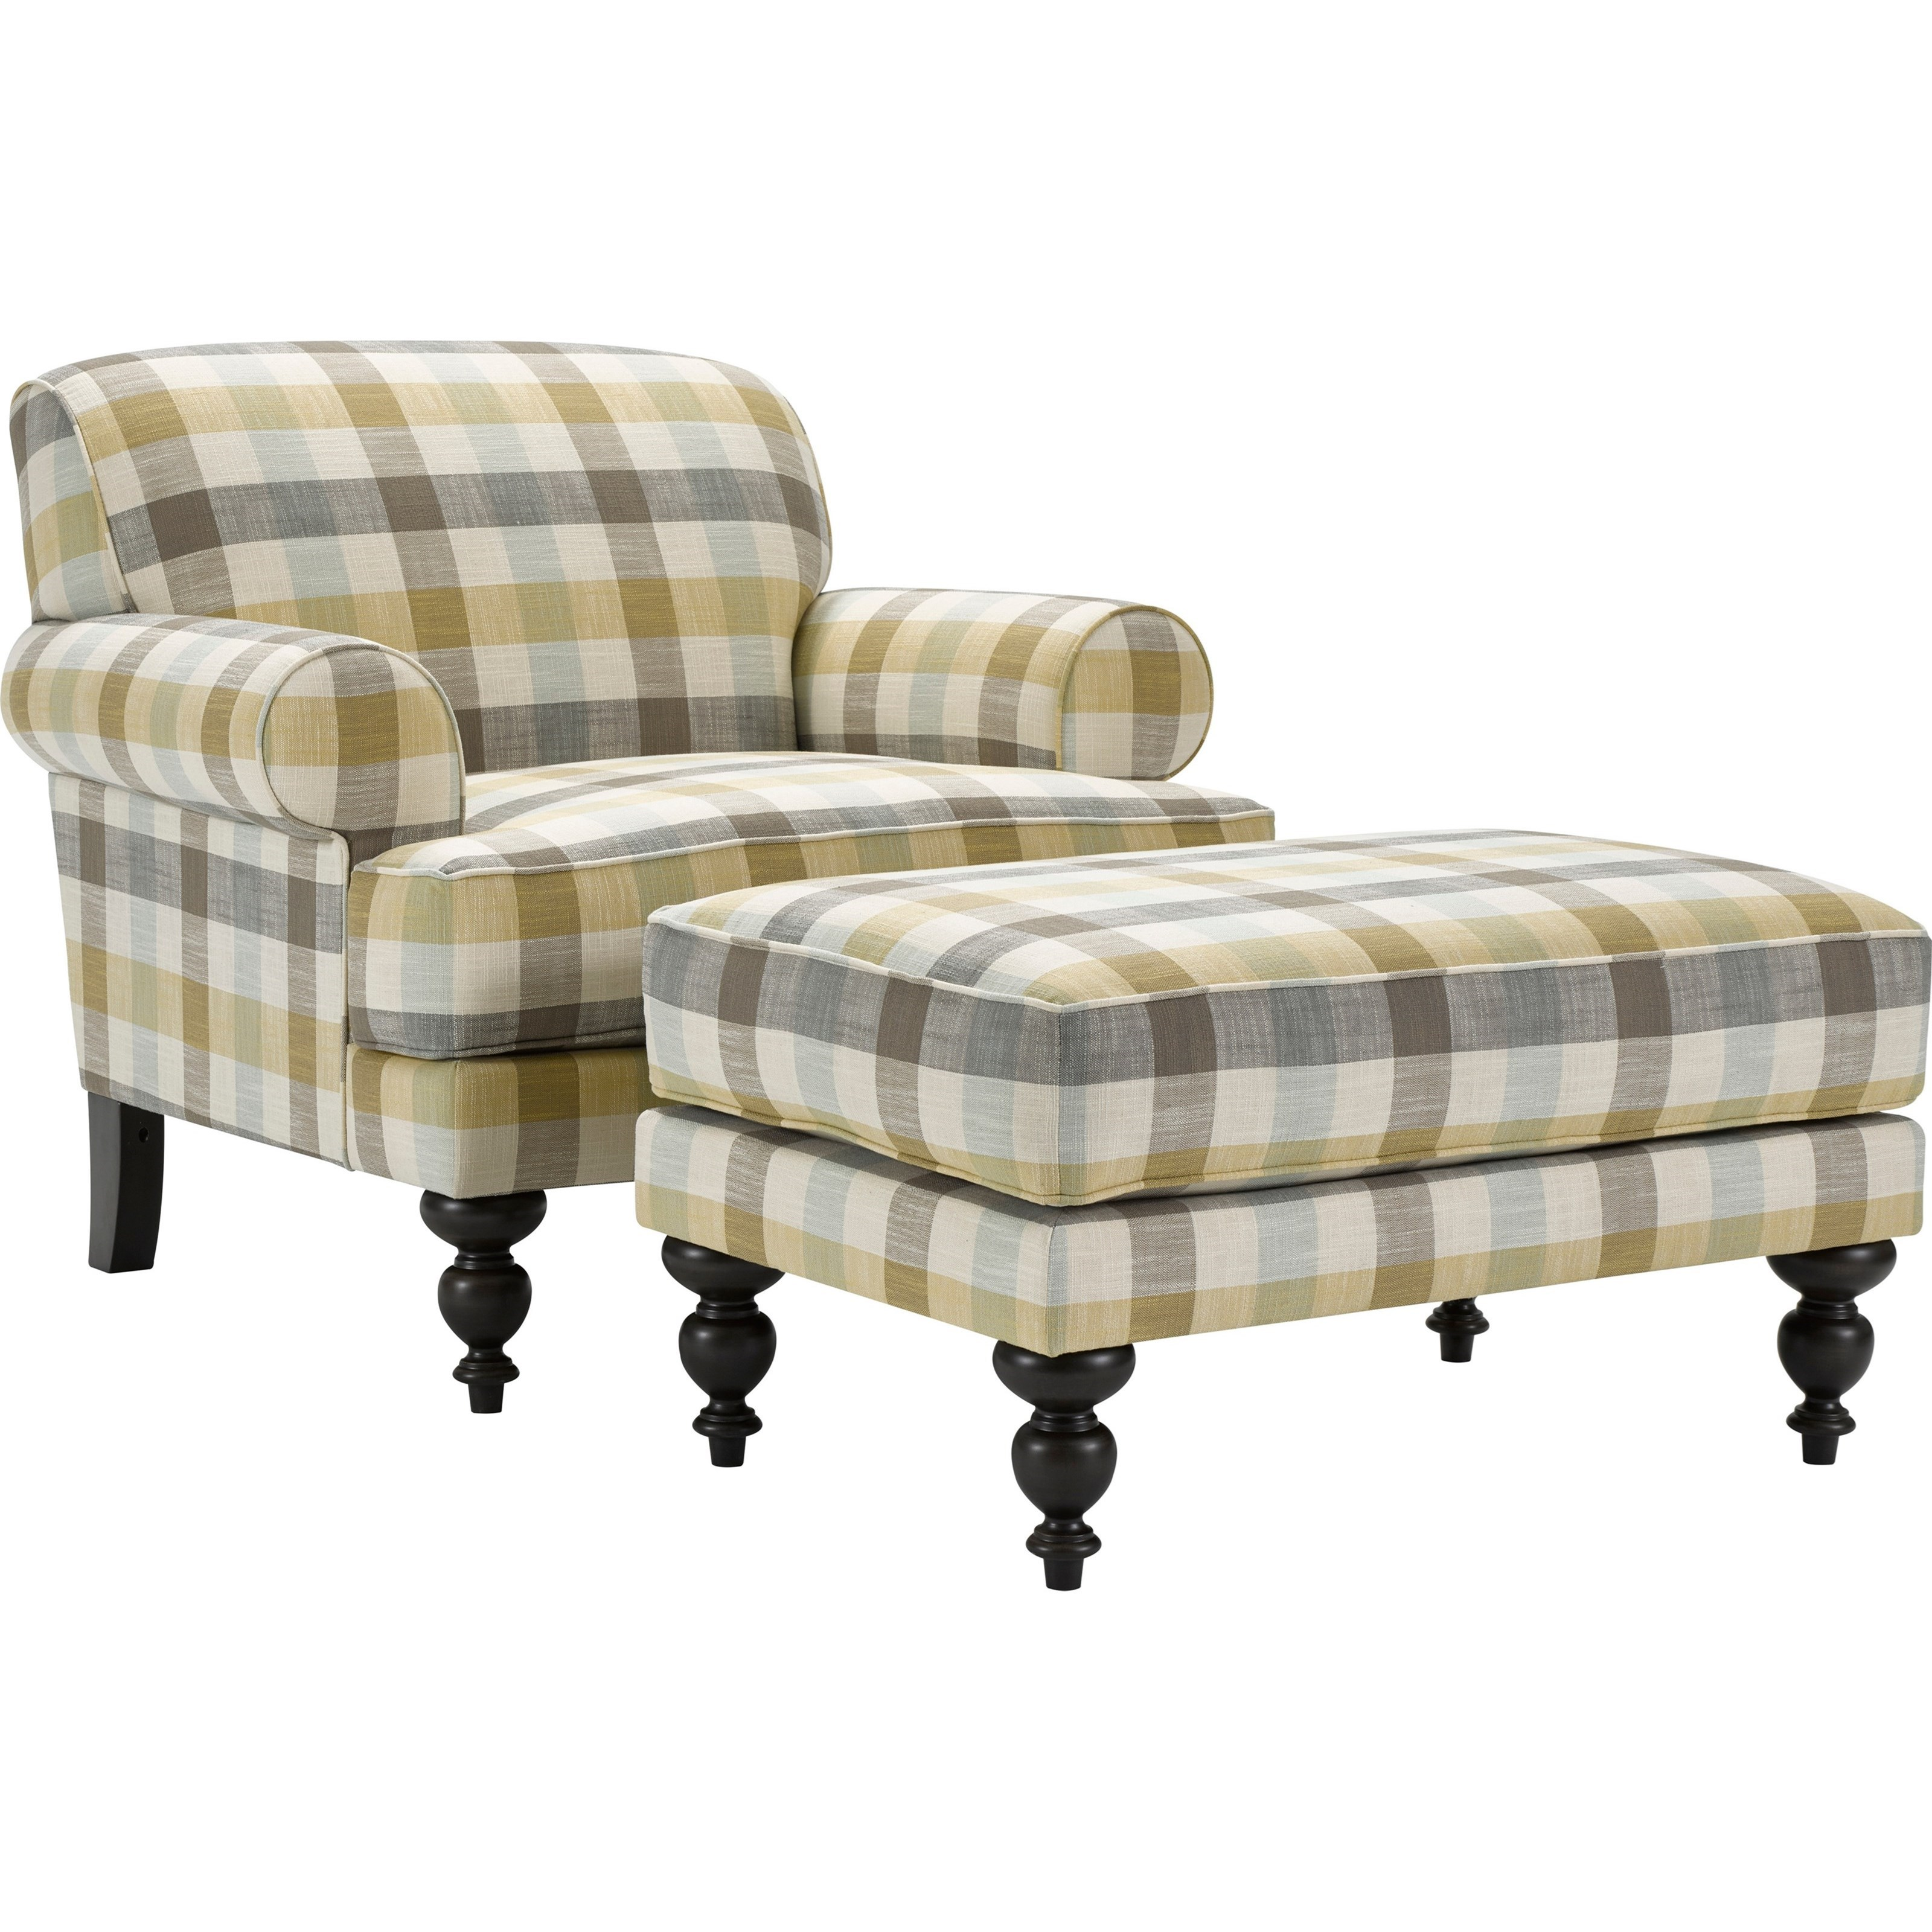 Charmant Broyhill Furniture Frankie Chair And Ottoman   Item Number: 4218 000+500